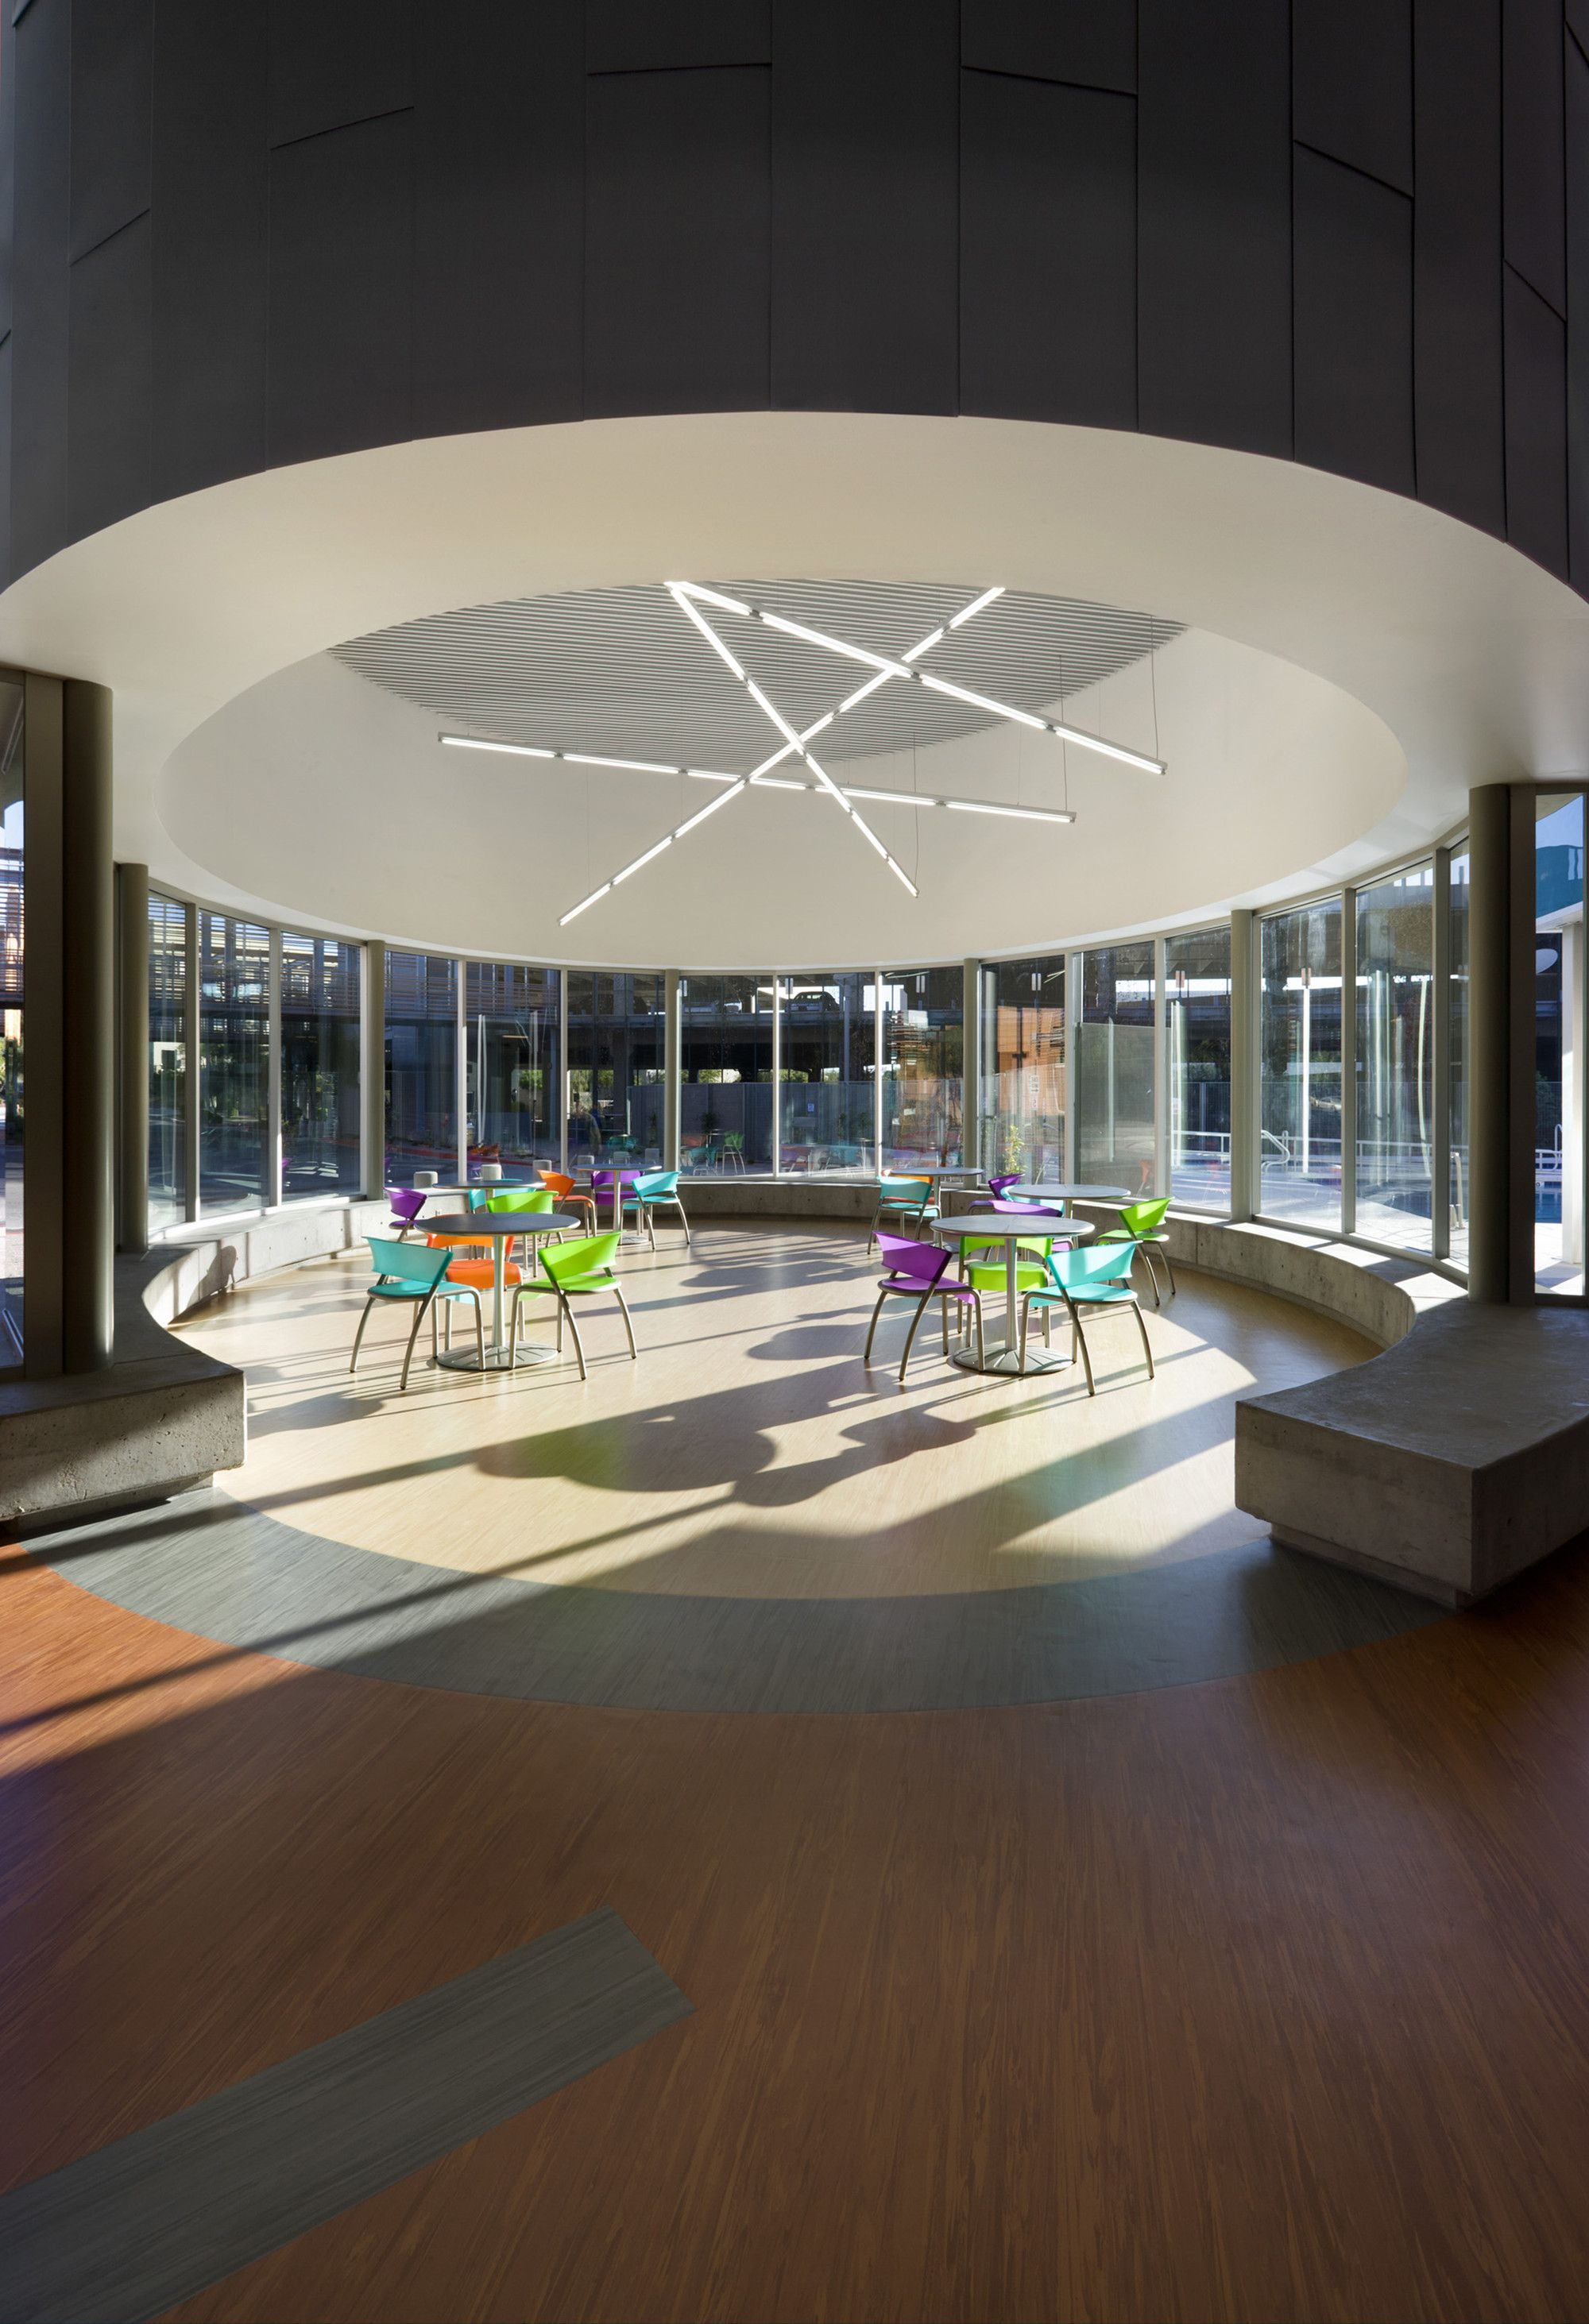 Gallery Of Sport And Fitness Center For Disabled People Baldinger Architectural Studio 3